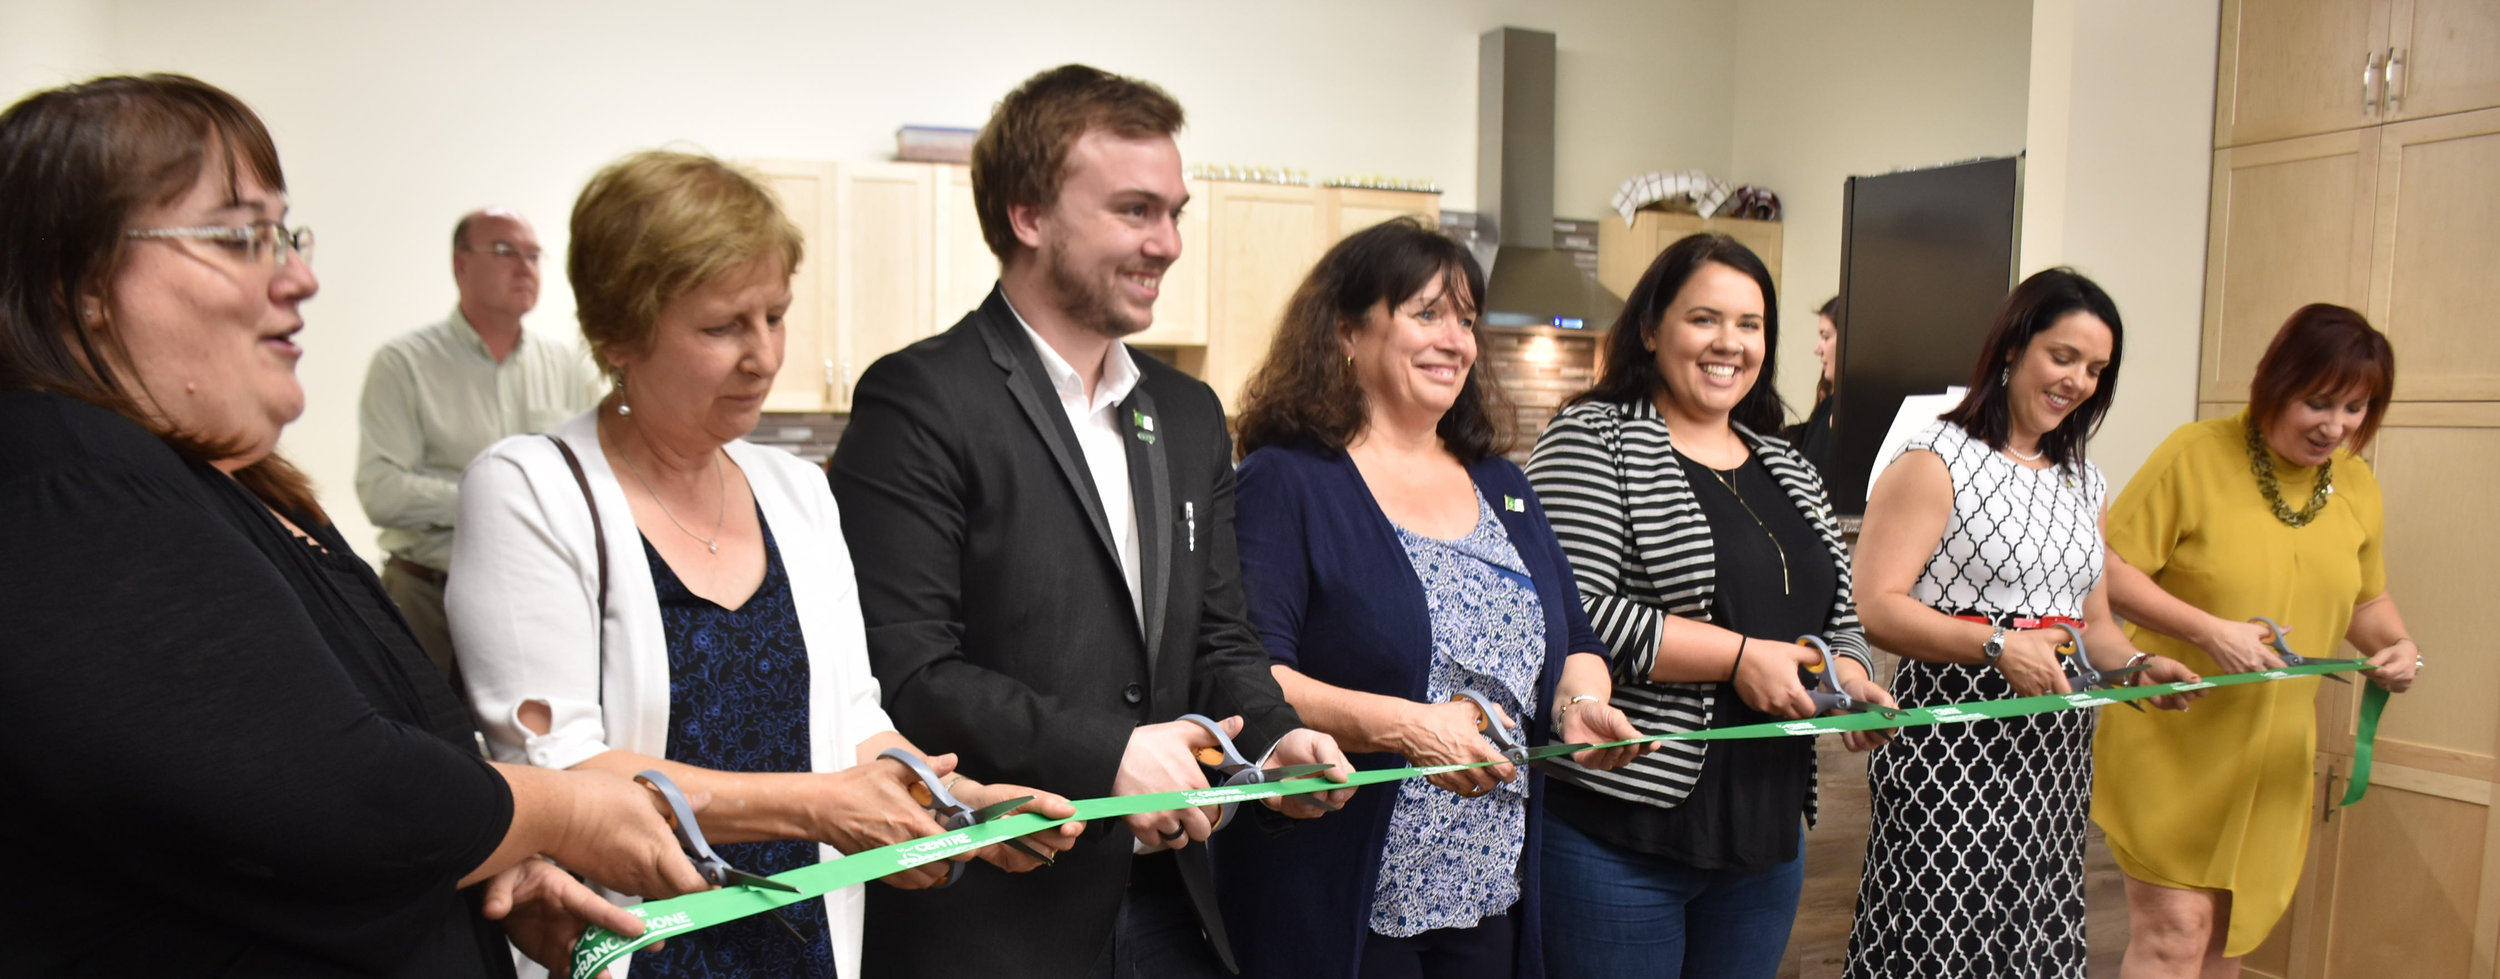 Ribbon cutting. Picture by Audrey Debruyne.